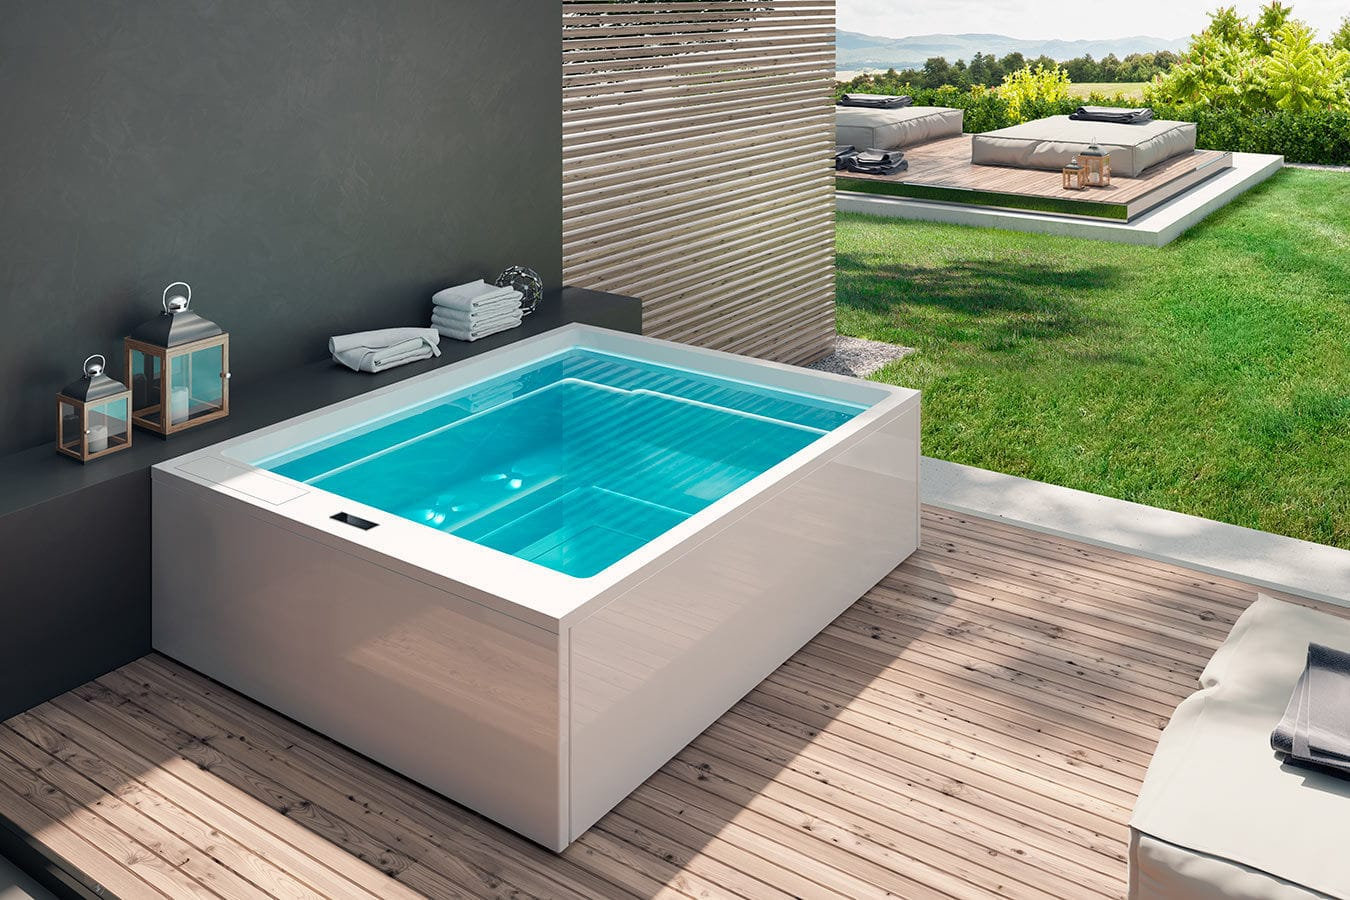 Above-ground hot tub / rectangular / 8-person / outdoor - MUSE by ...